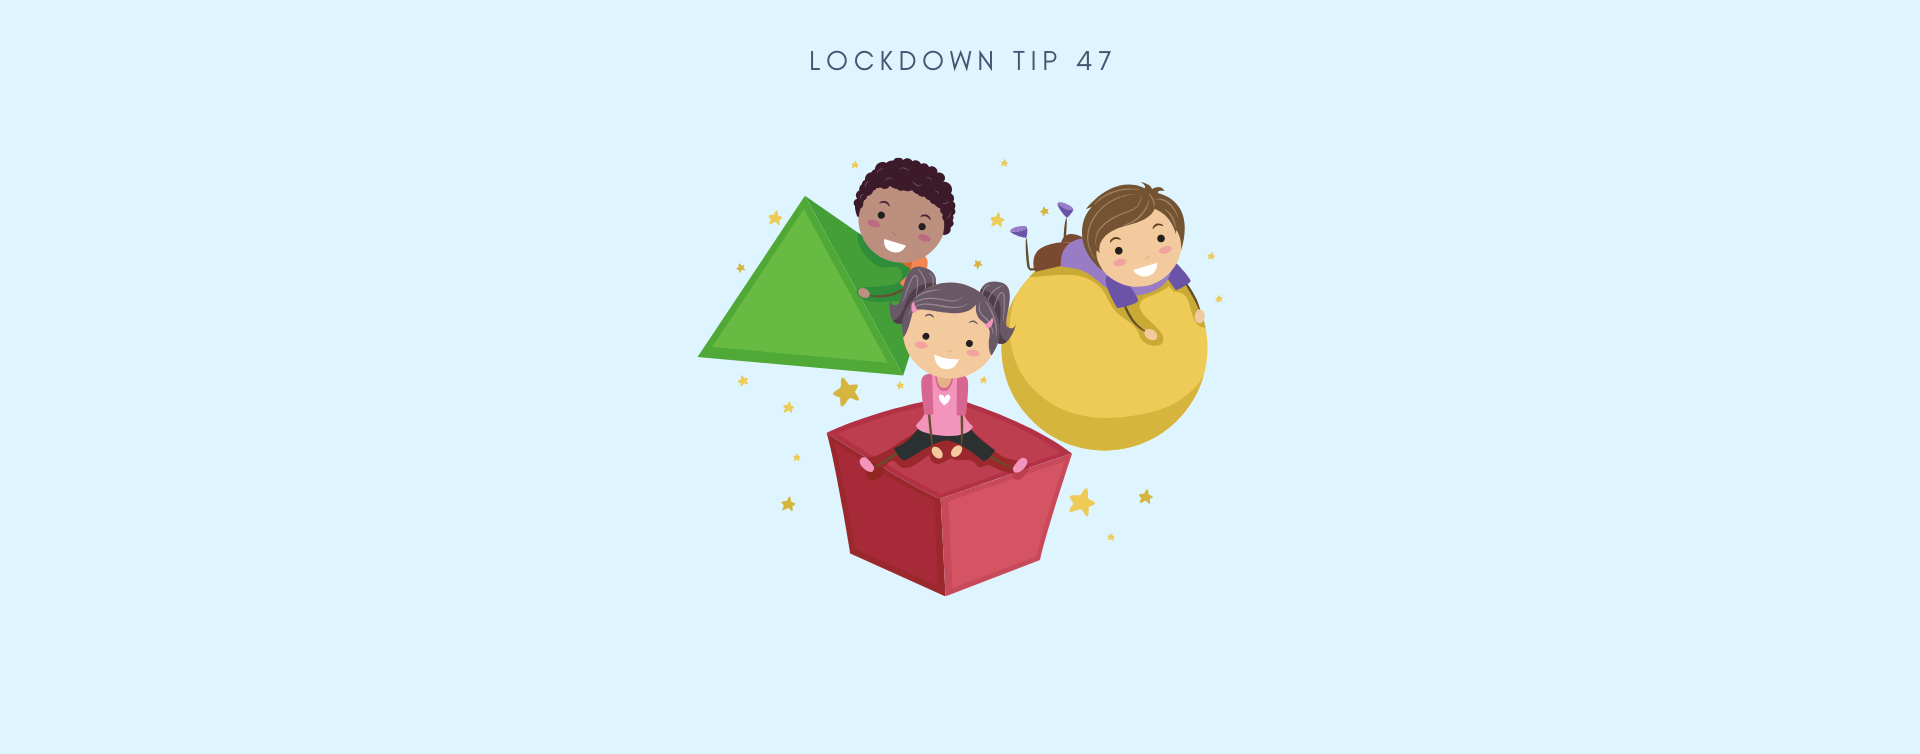 MCSA Lockdown Tip 47